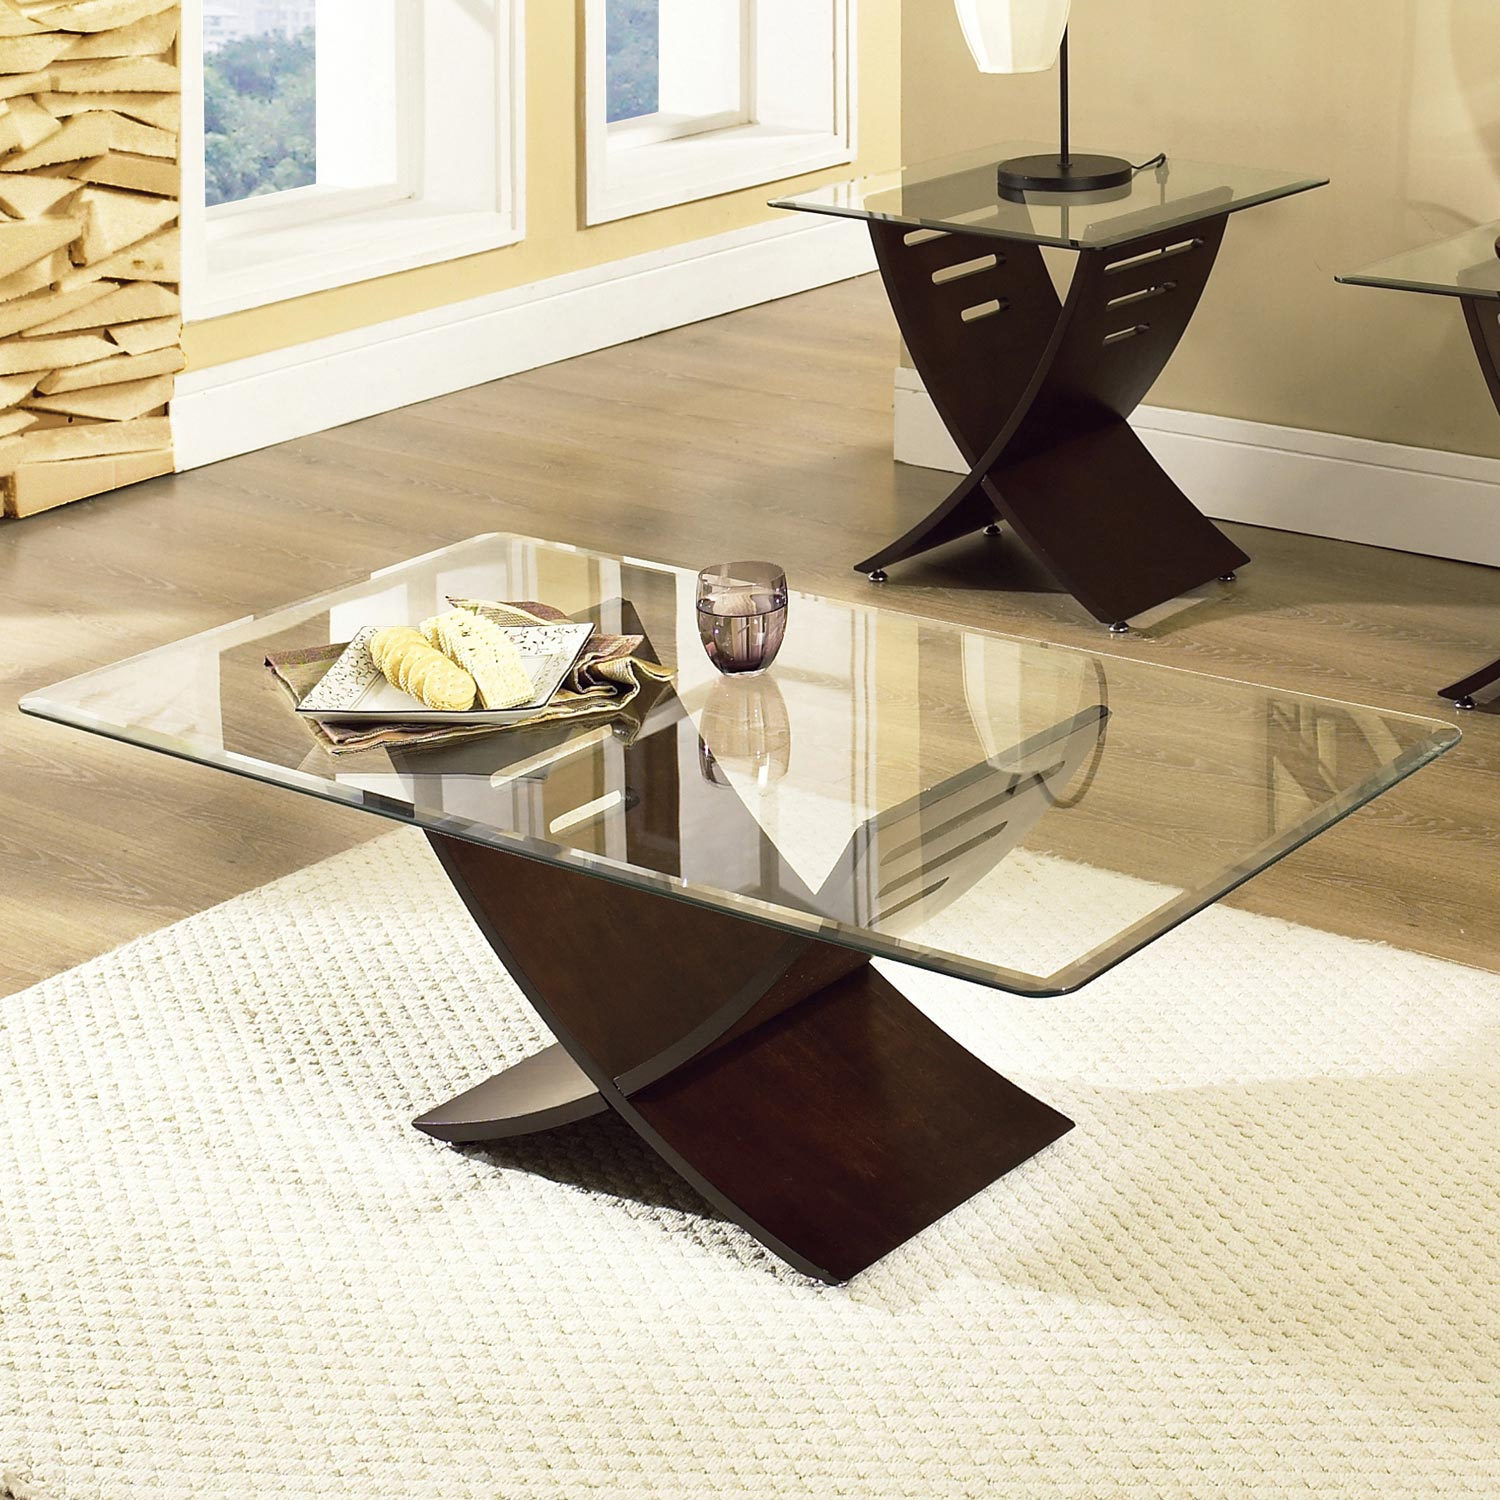 Cafe Occasional Tables Set - Beveled Glass, Espresso Wood - SSC-CA125T-CA125BE